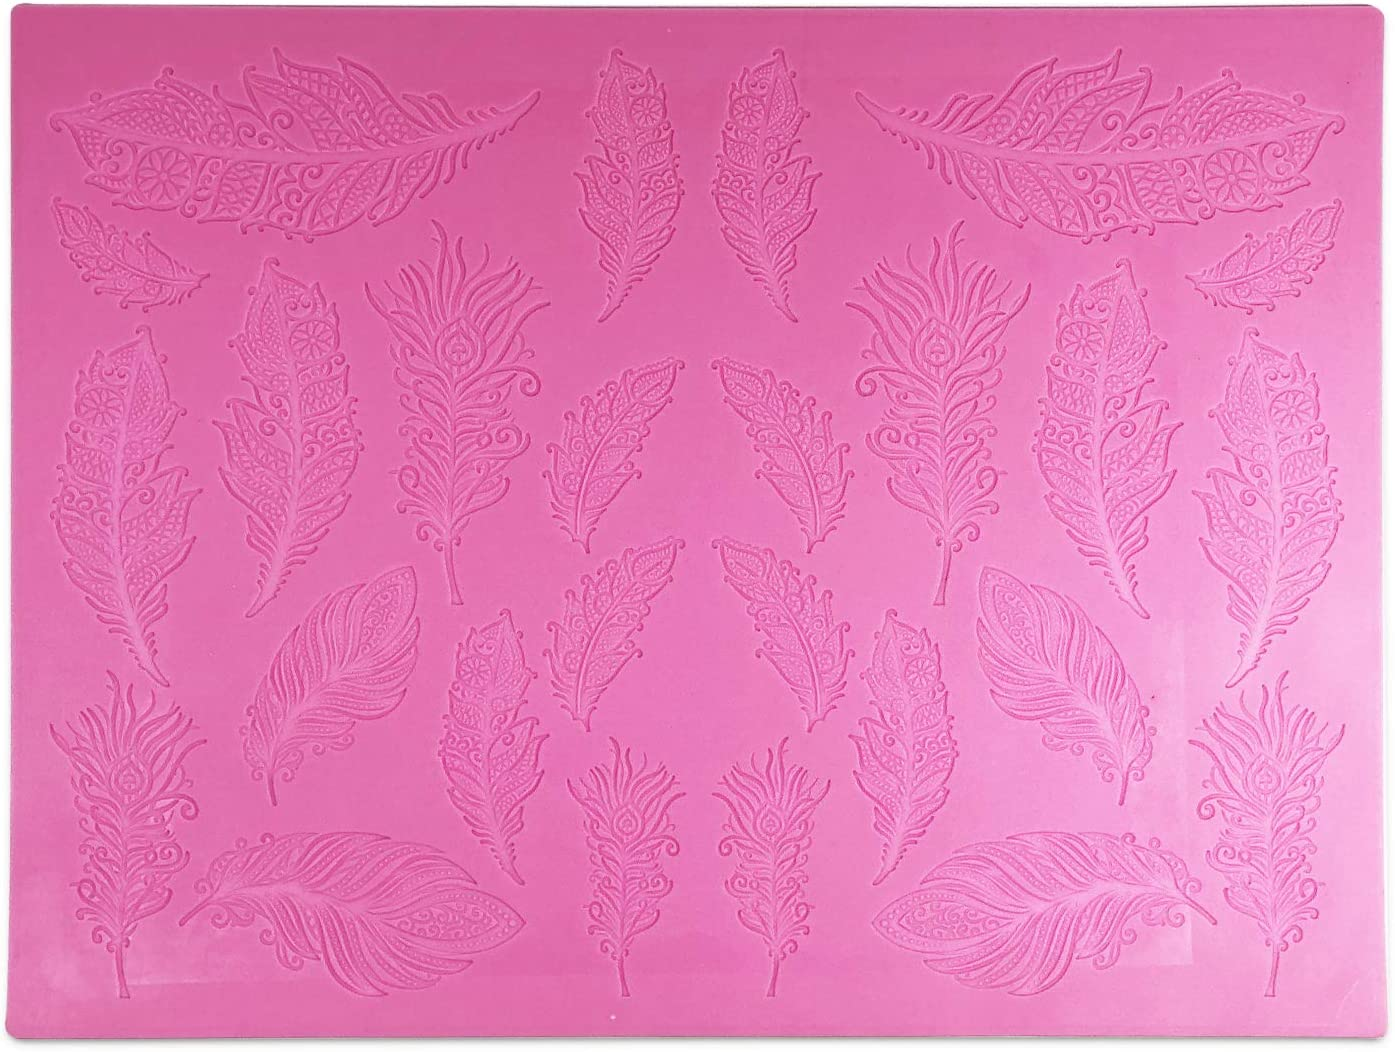 Feathers 3-D Silicone Lace Mat Raleigh Mall Claire Bowman Max 80% OFF by